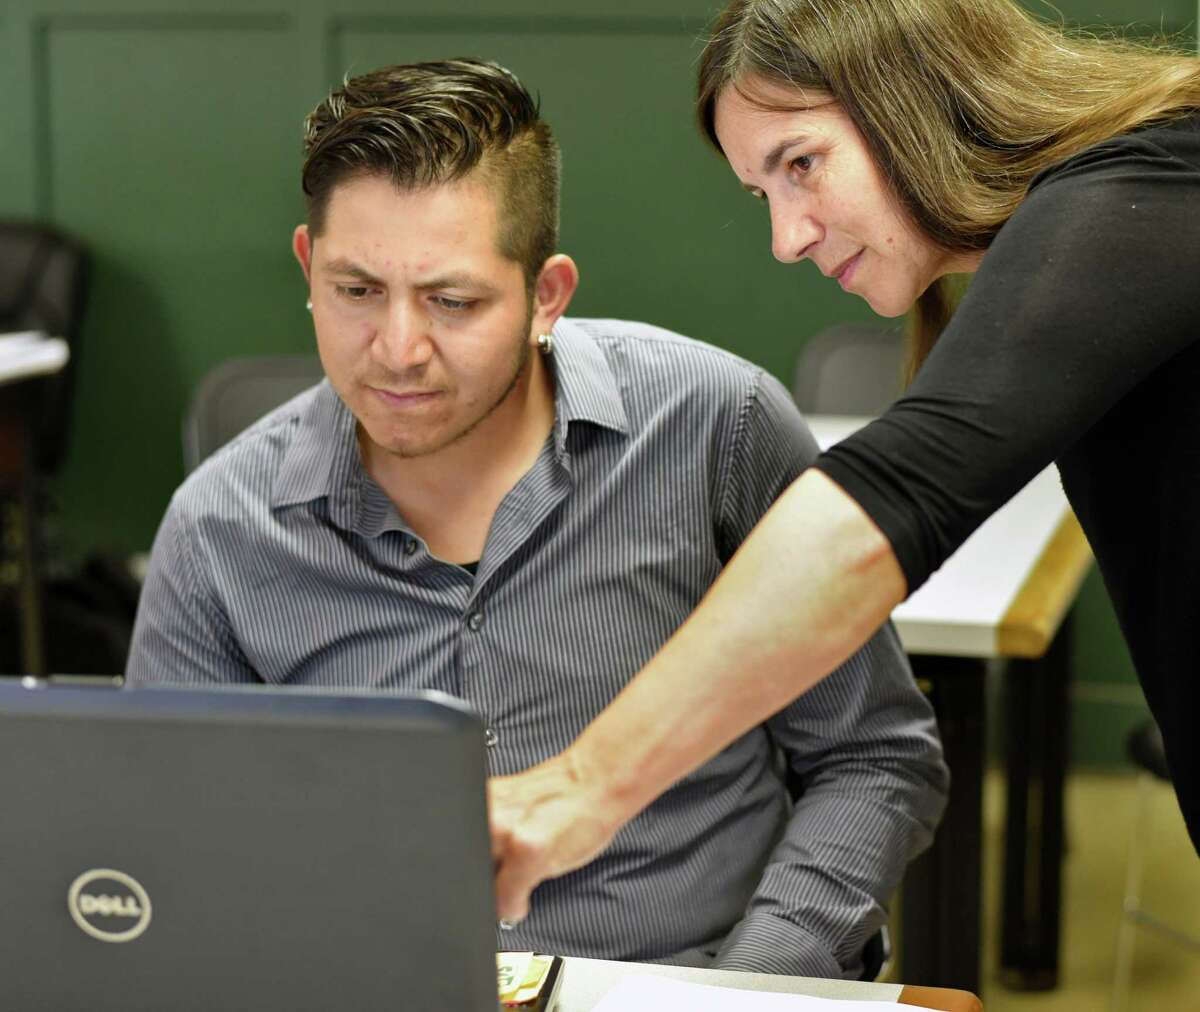 Track worker Julio Castro, left, and Saratoga County EOC instructor Joan Odess review photos on a laptop as they prepare for an upcoming photography exhibit at the Saratoga Race Course Thursday July 28, 2016 in Saratoga Springs, NY. (John Carl D'Annibale / Times Union)